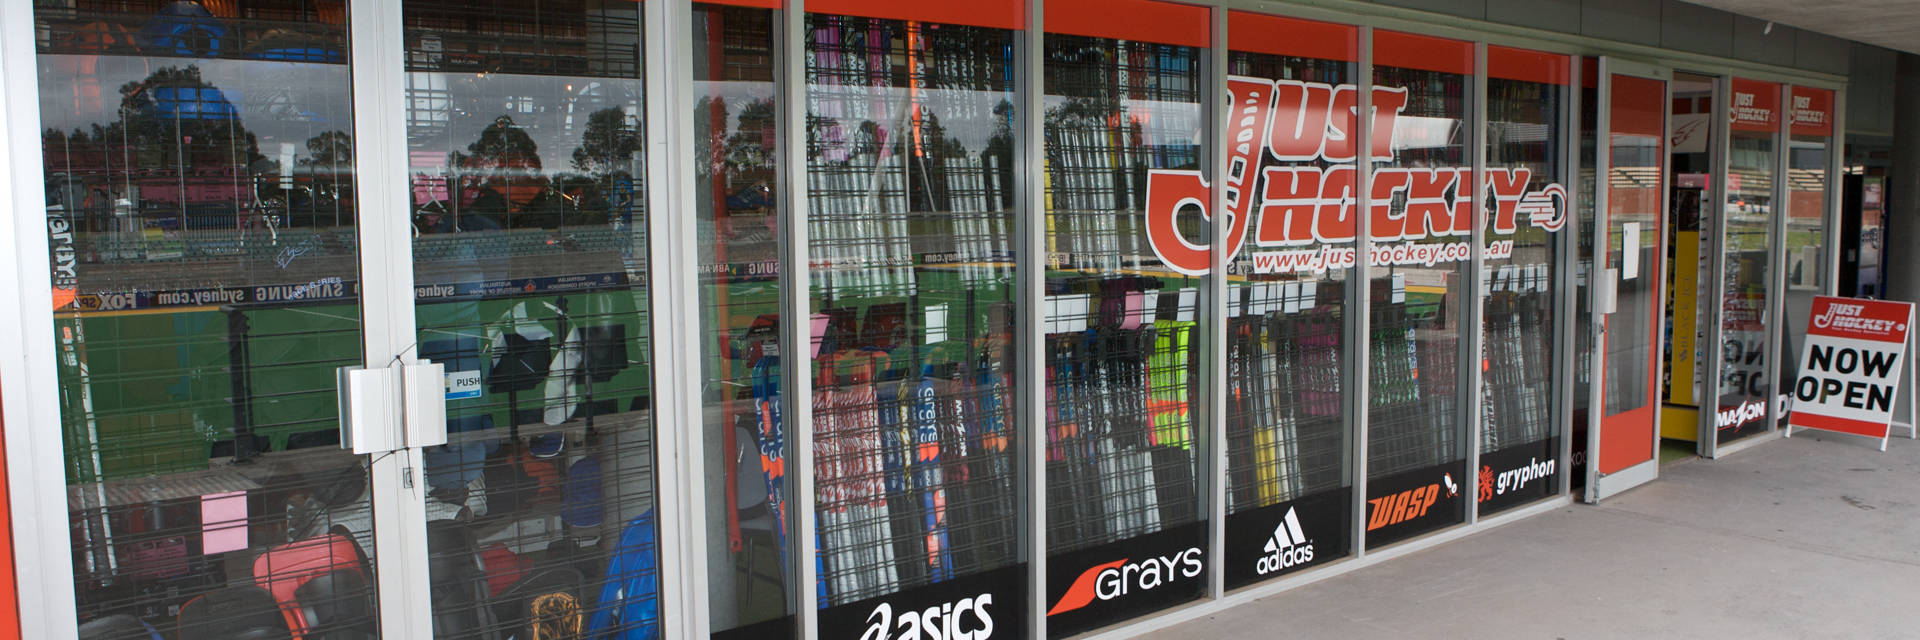 Hockey Centre - Just Hockey Shop - Photography by The Big Picture